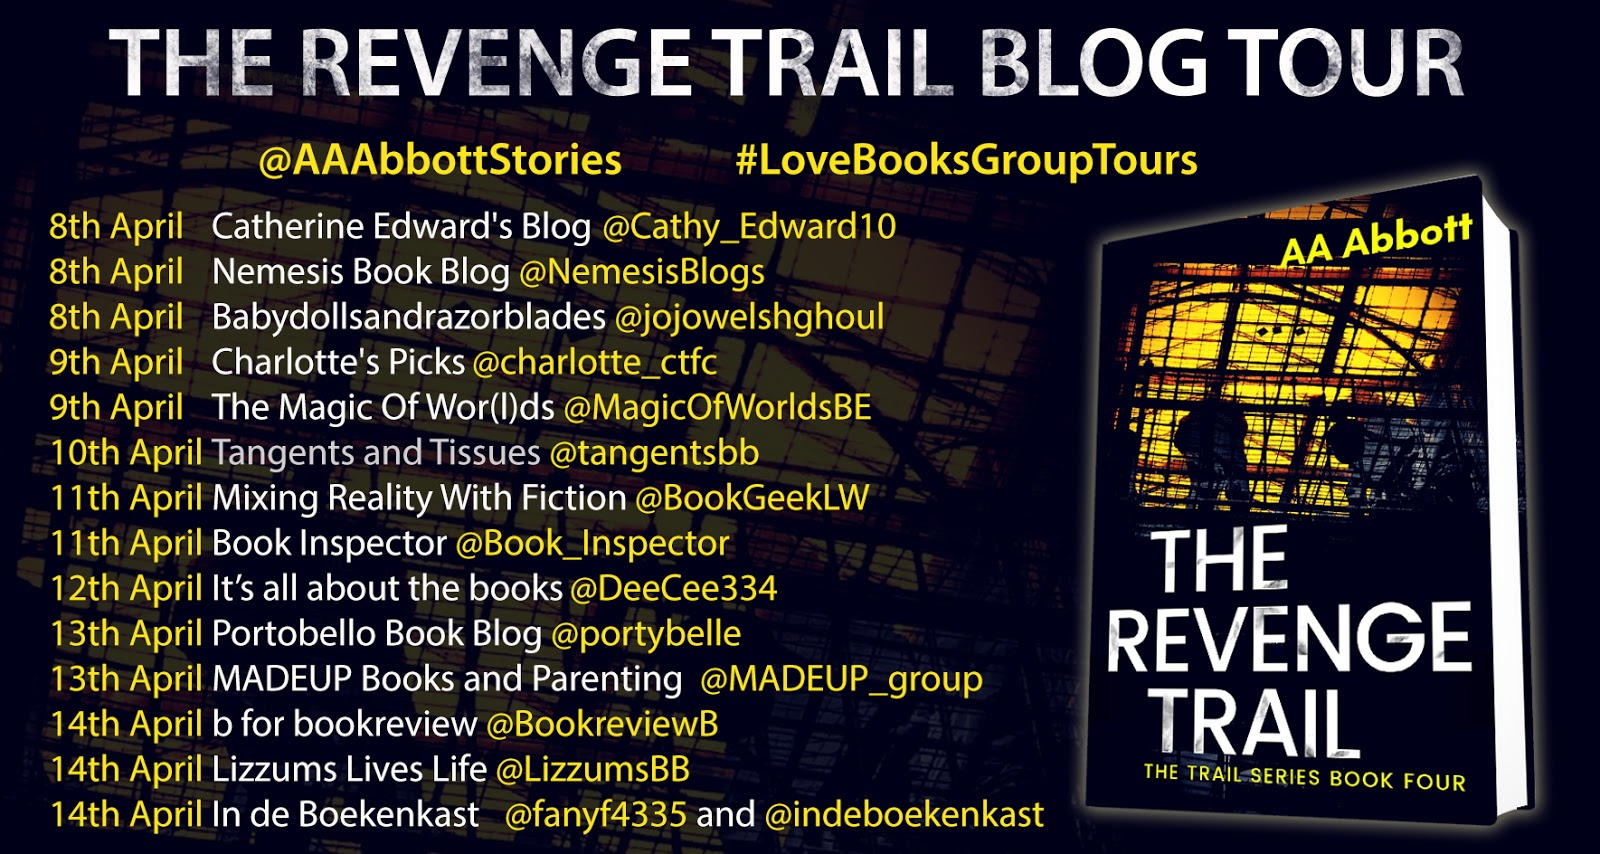 The Revenge Trail Book Tour Dates